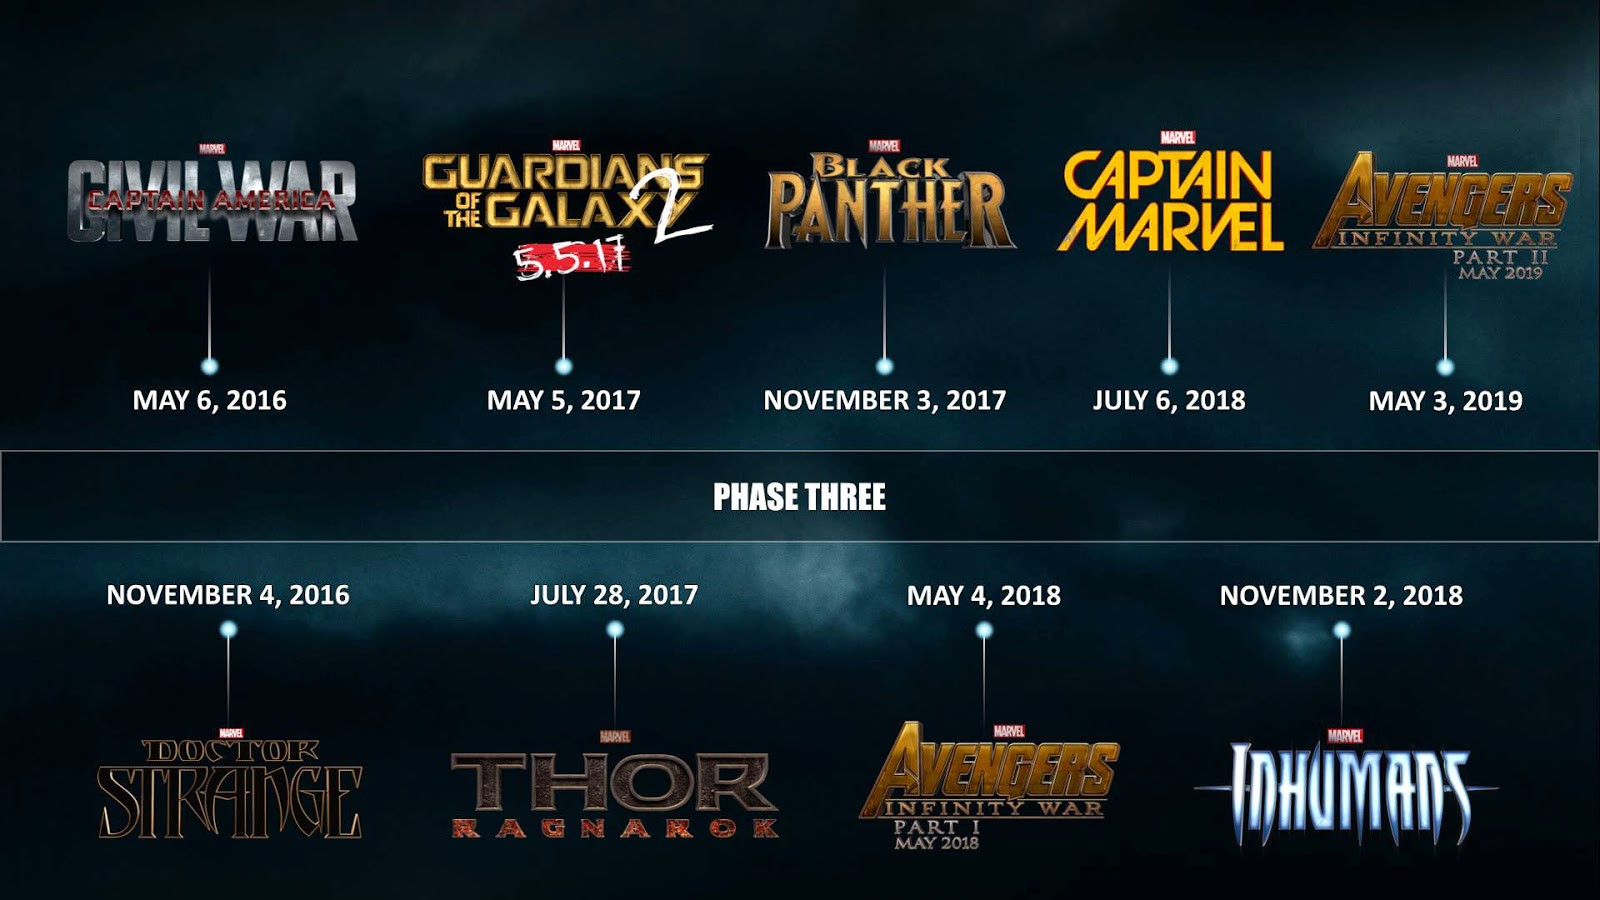 marvel phase 3 timeline